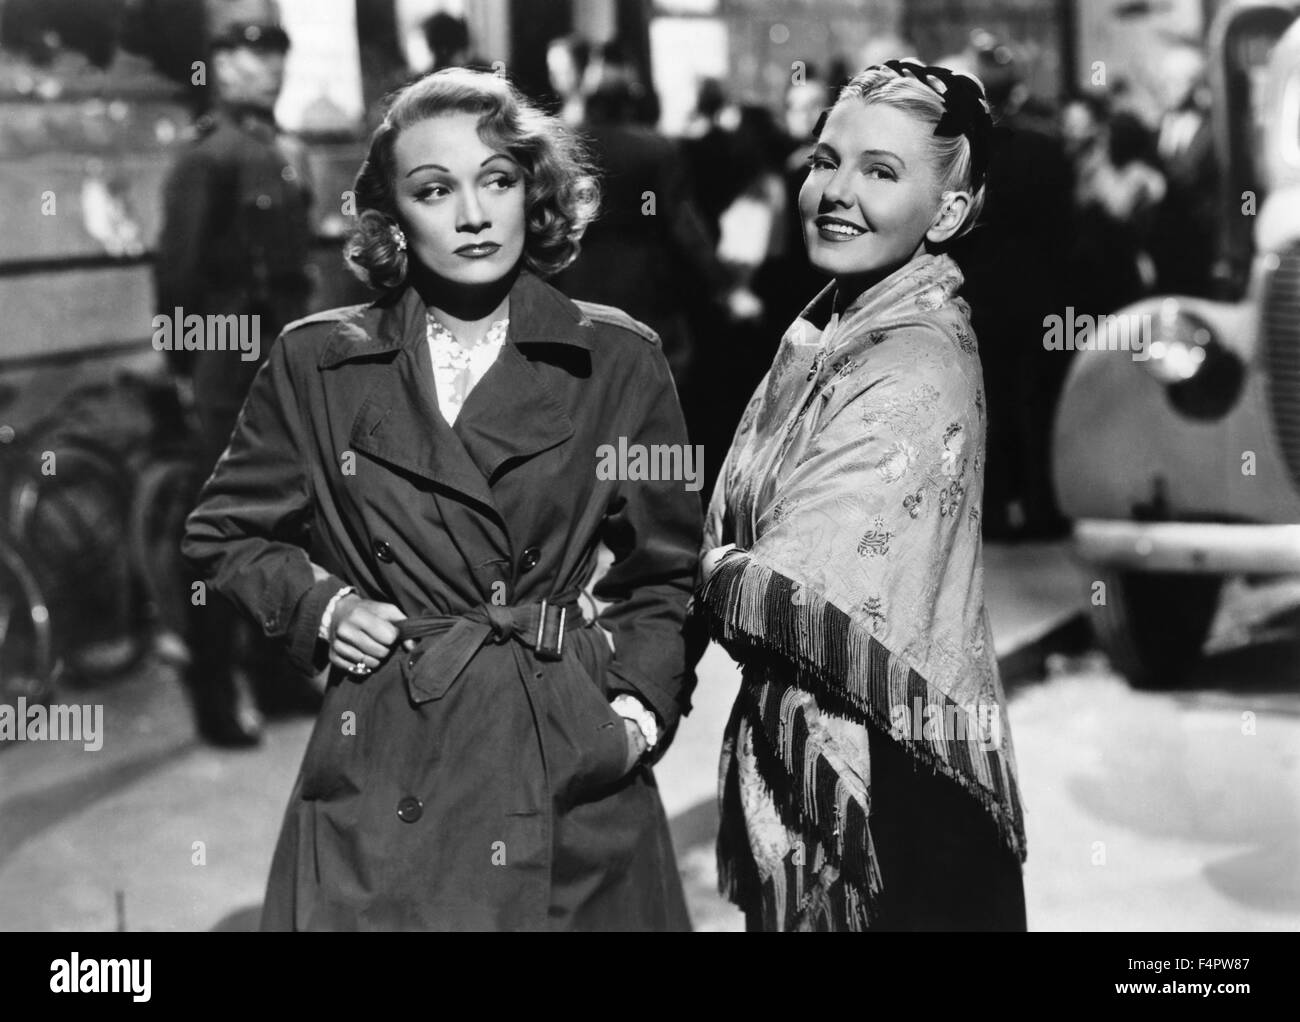 Marlene Dietrich and Jean Arthur / A foreign affair / 1948 directed by Billy Wilder [Paramount Pictures] - Stock Image